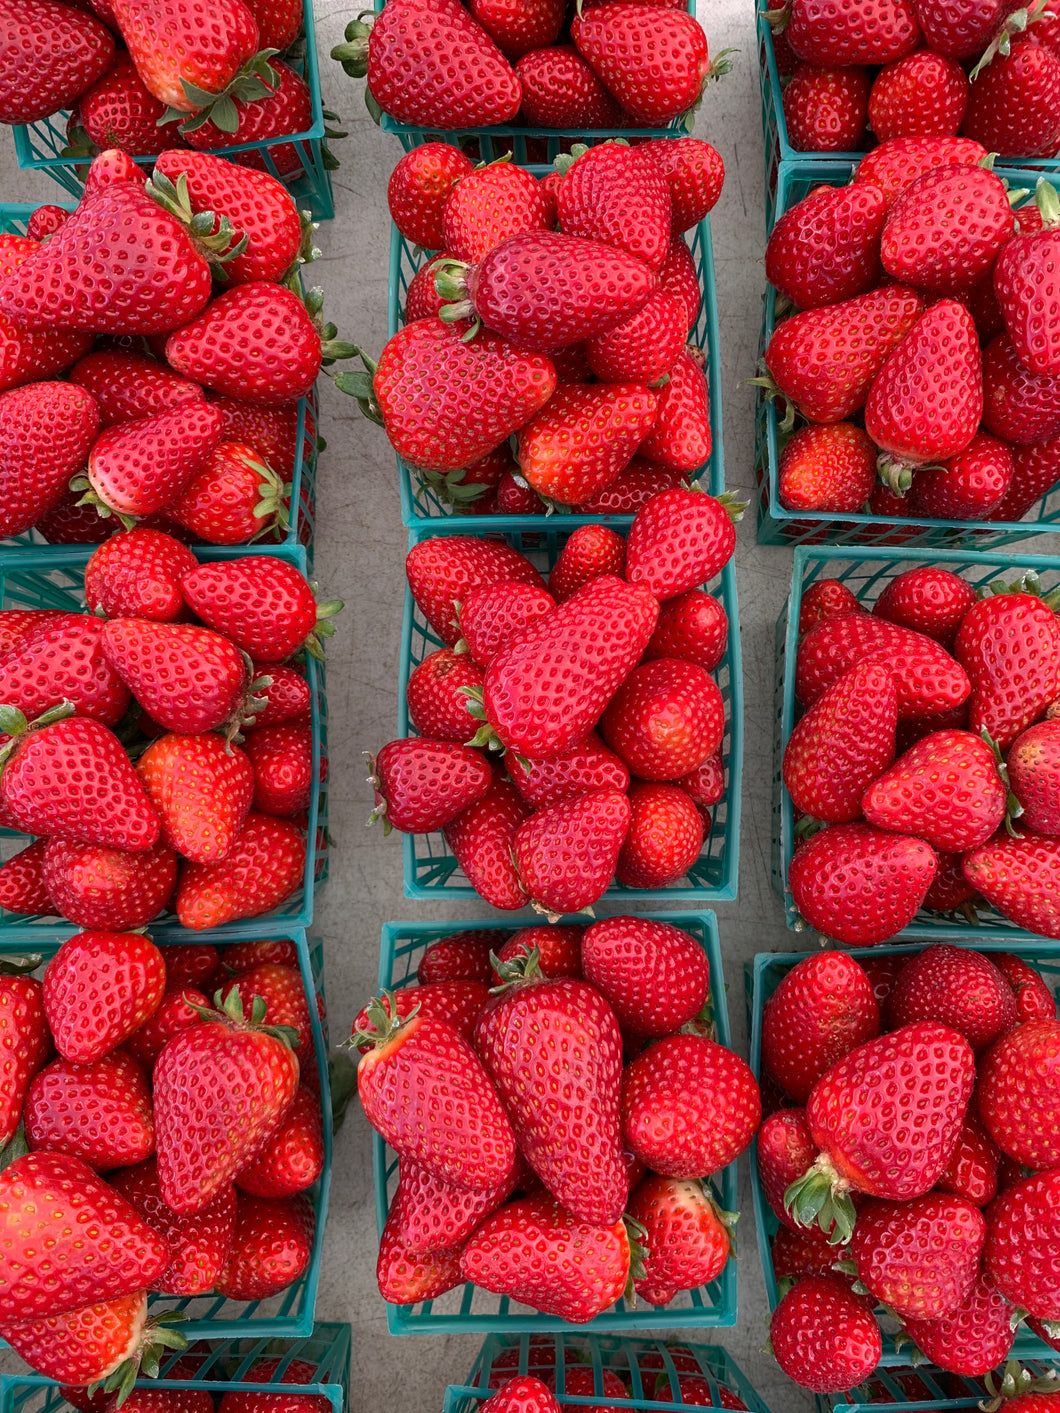 Strawberries, P and K Farms (1lb)